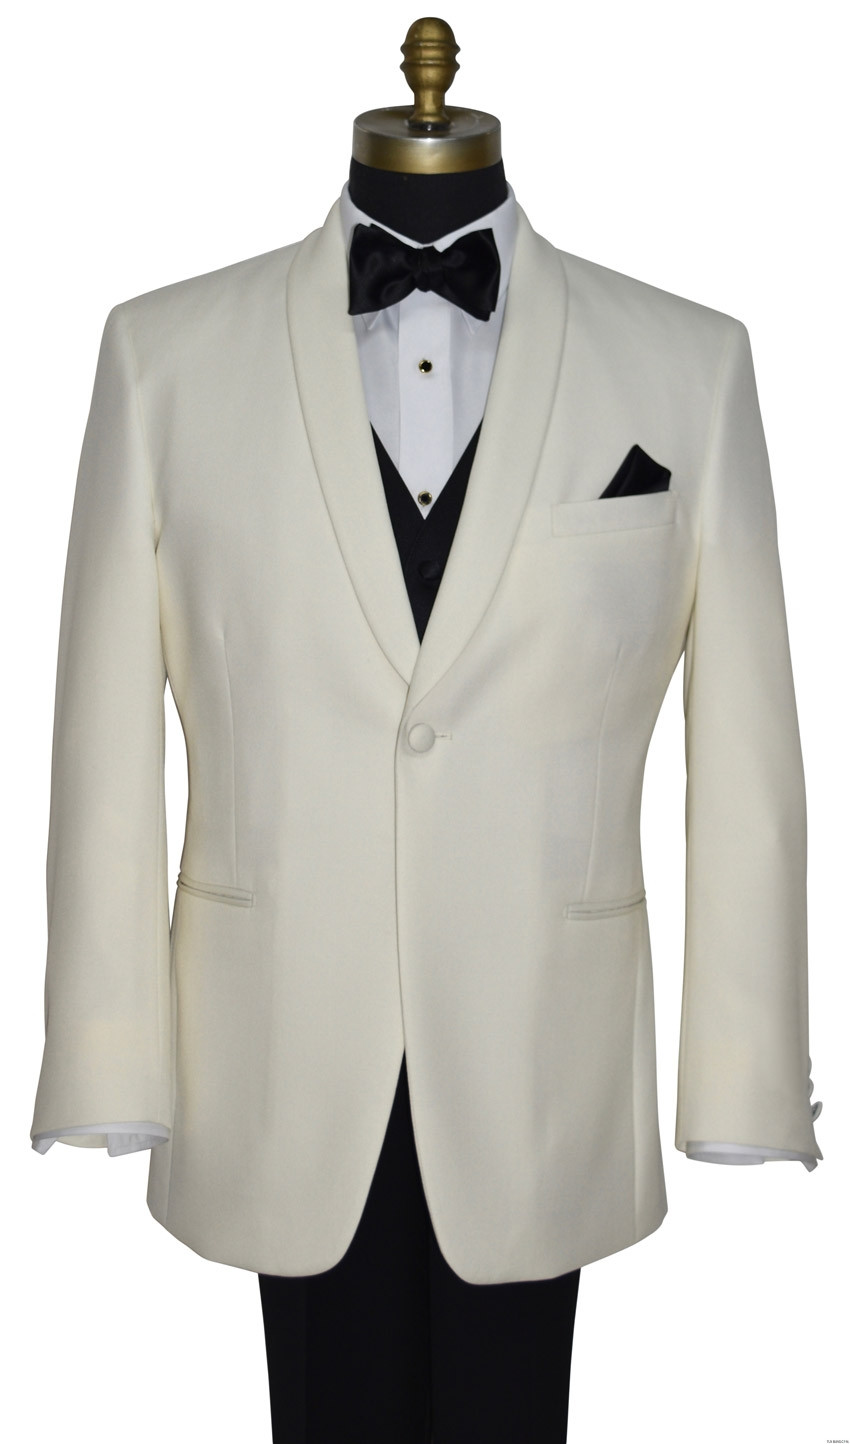 men's ivory dinner jacket with black pre-tied bowtie and black vest by San Miguel Formals